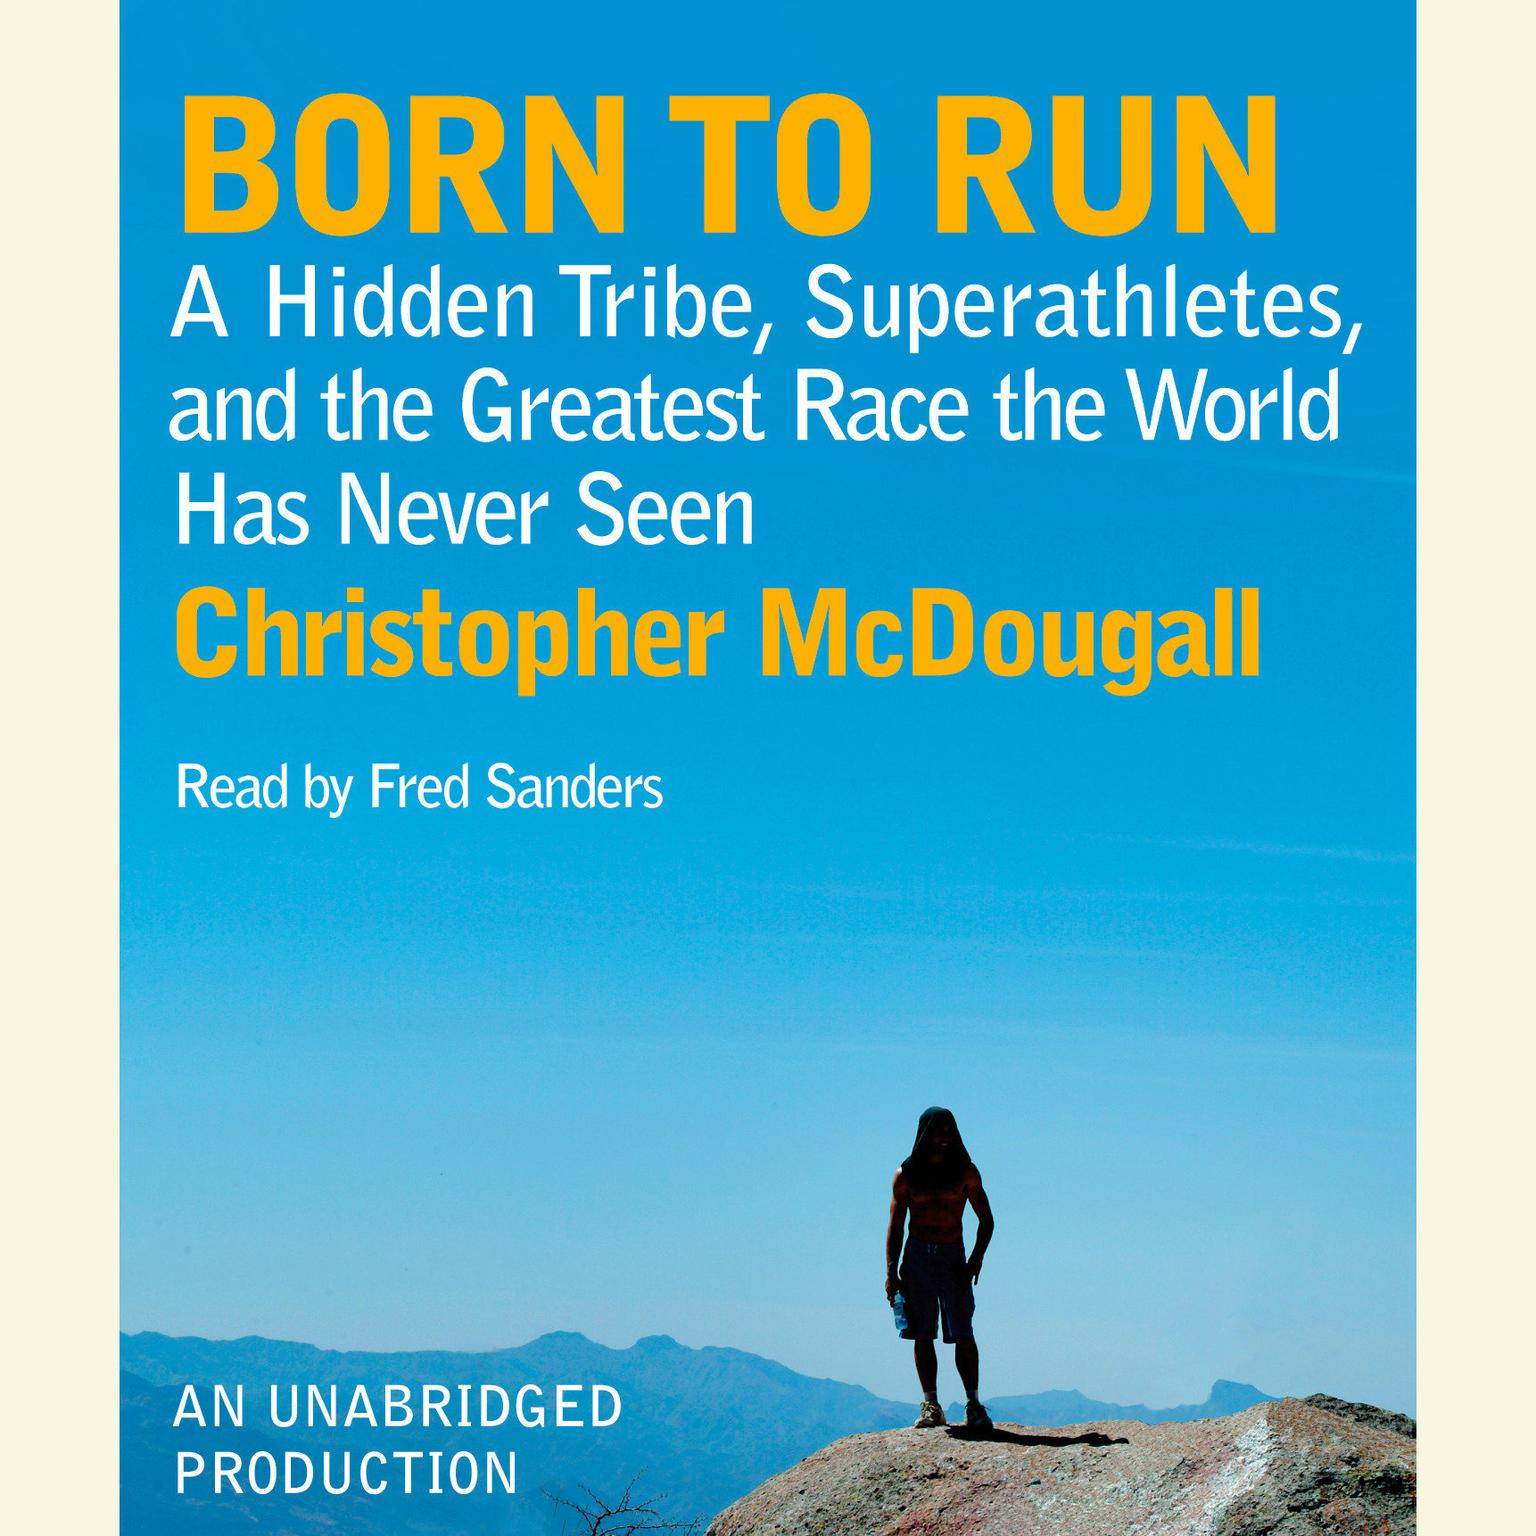 born to run book christopher mcdougall review